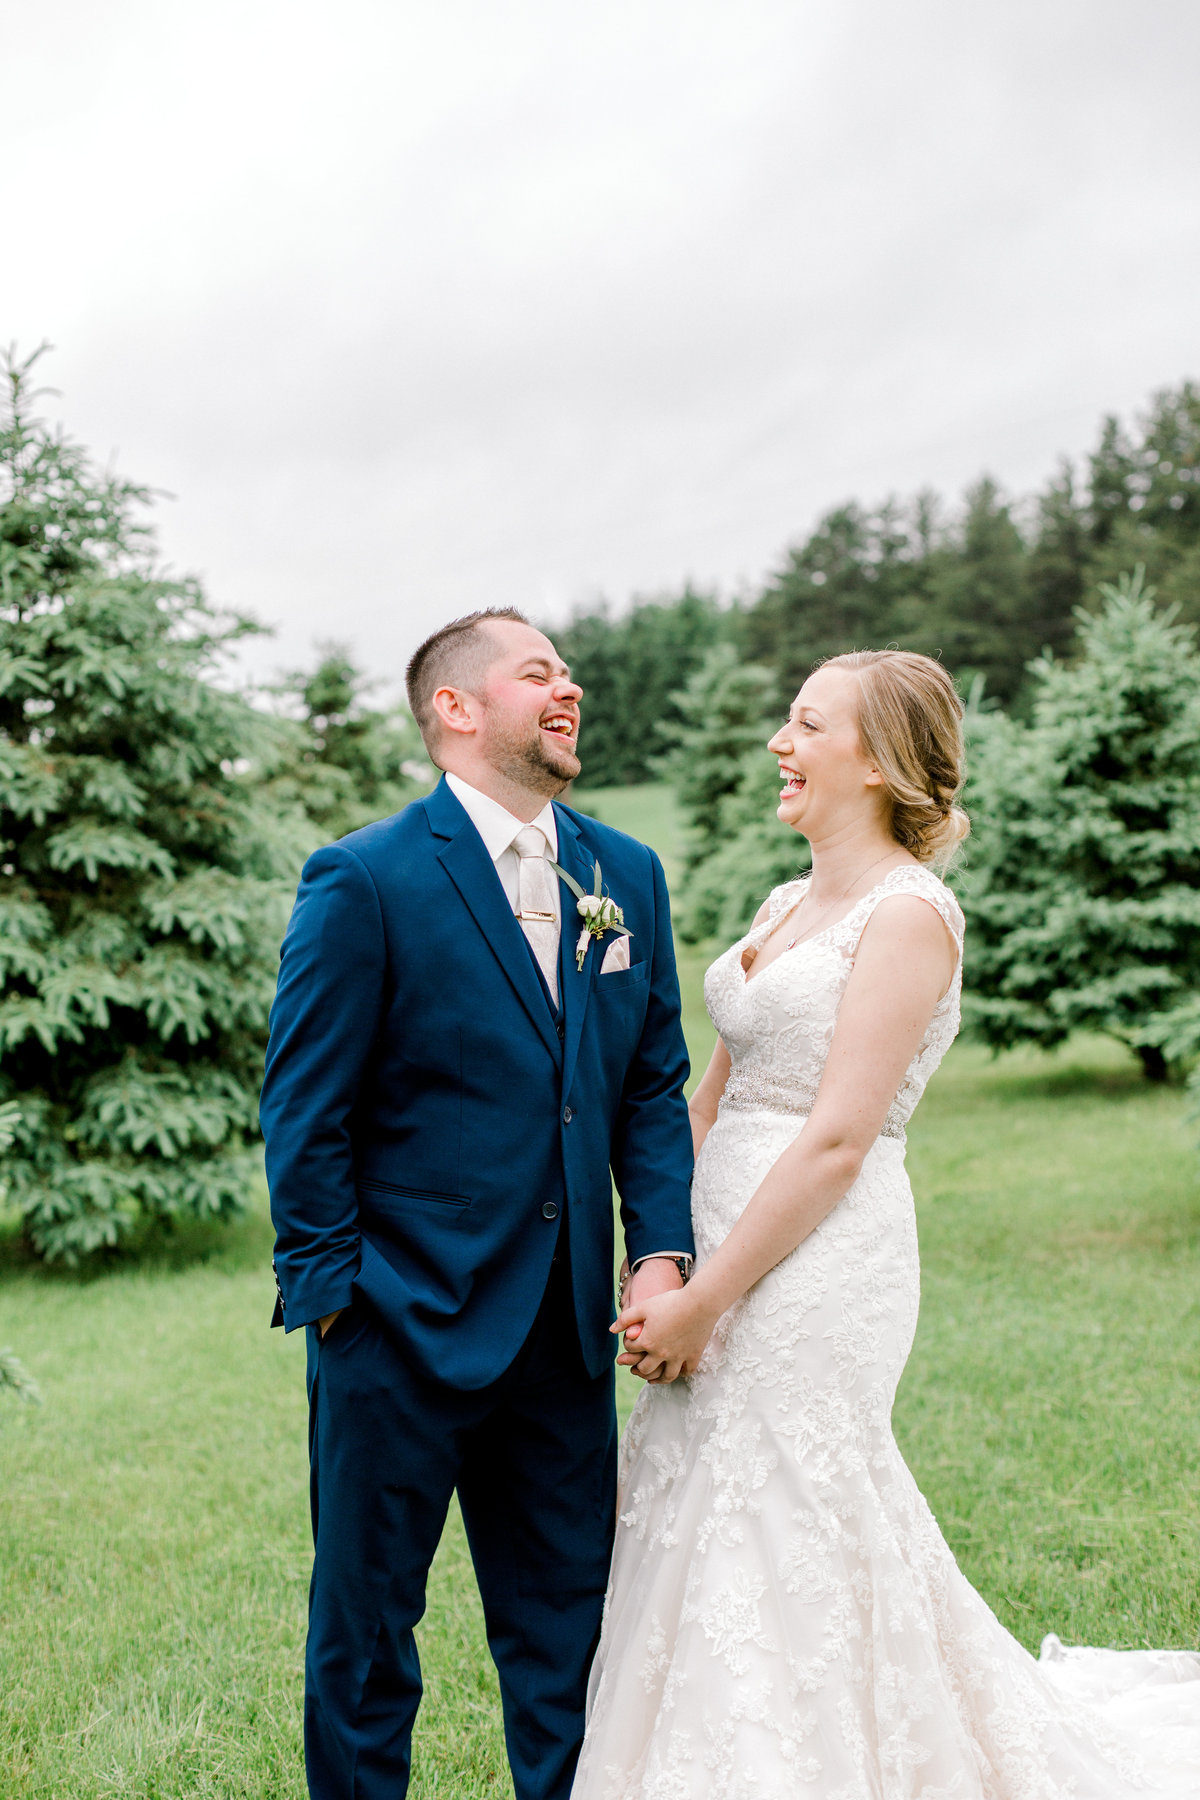 Lauren Baker Photography Minneapolis St Paul Twin Cities Wedding Senior Dance Photographer15